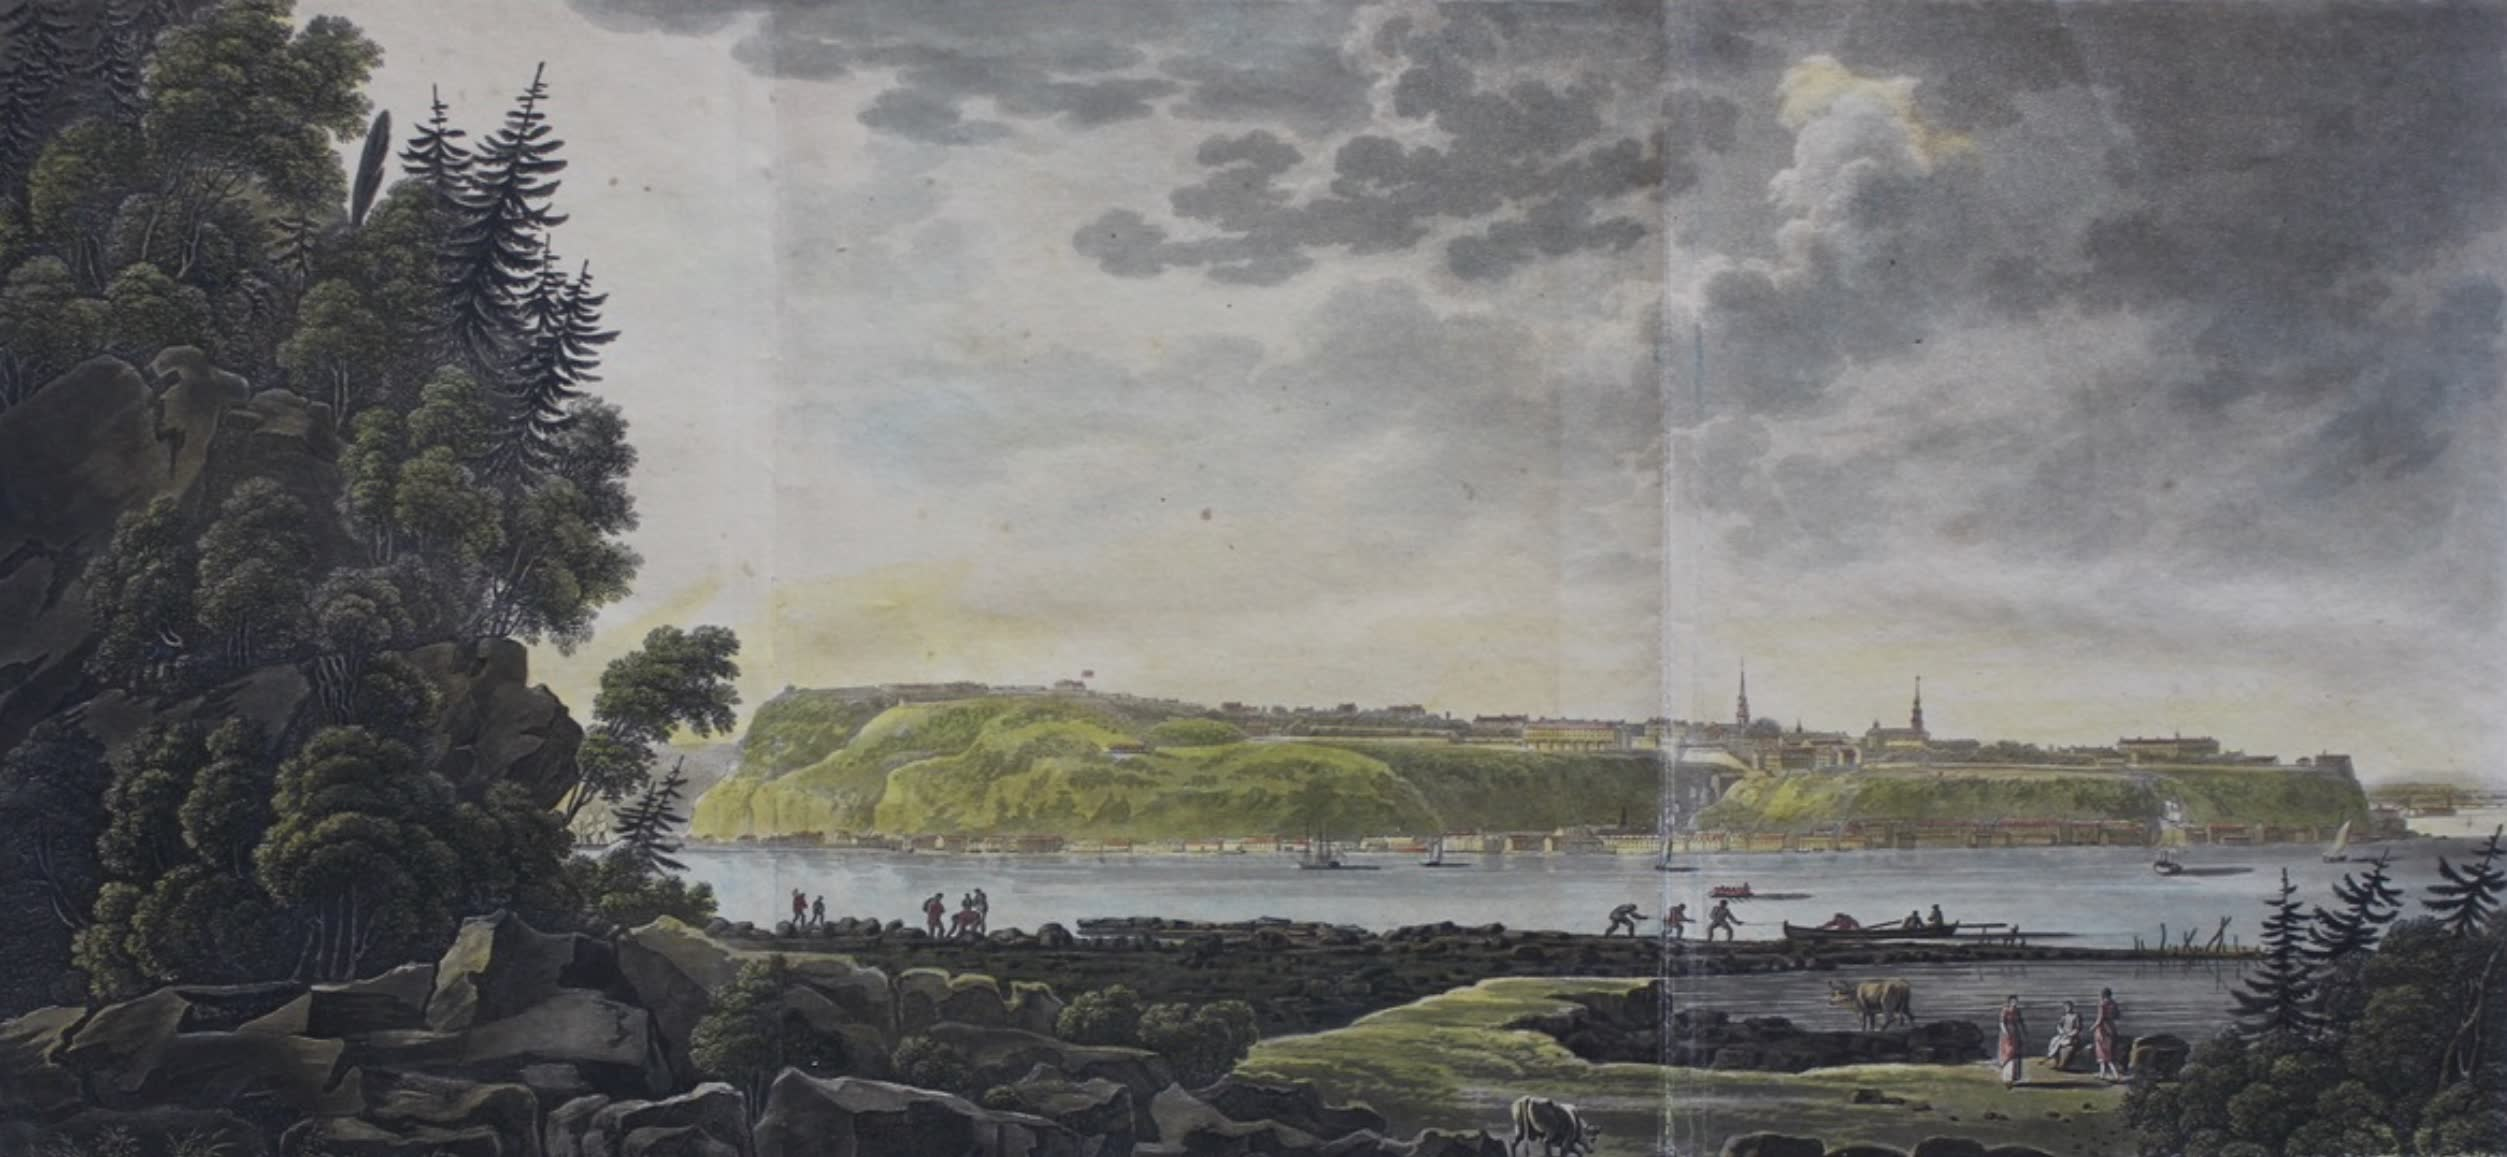 Travels Through the Canadas - Quebec, from Point Leyi (1807)